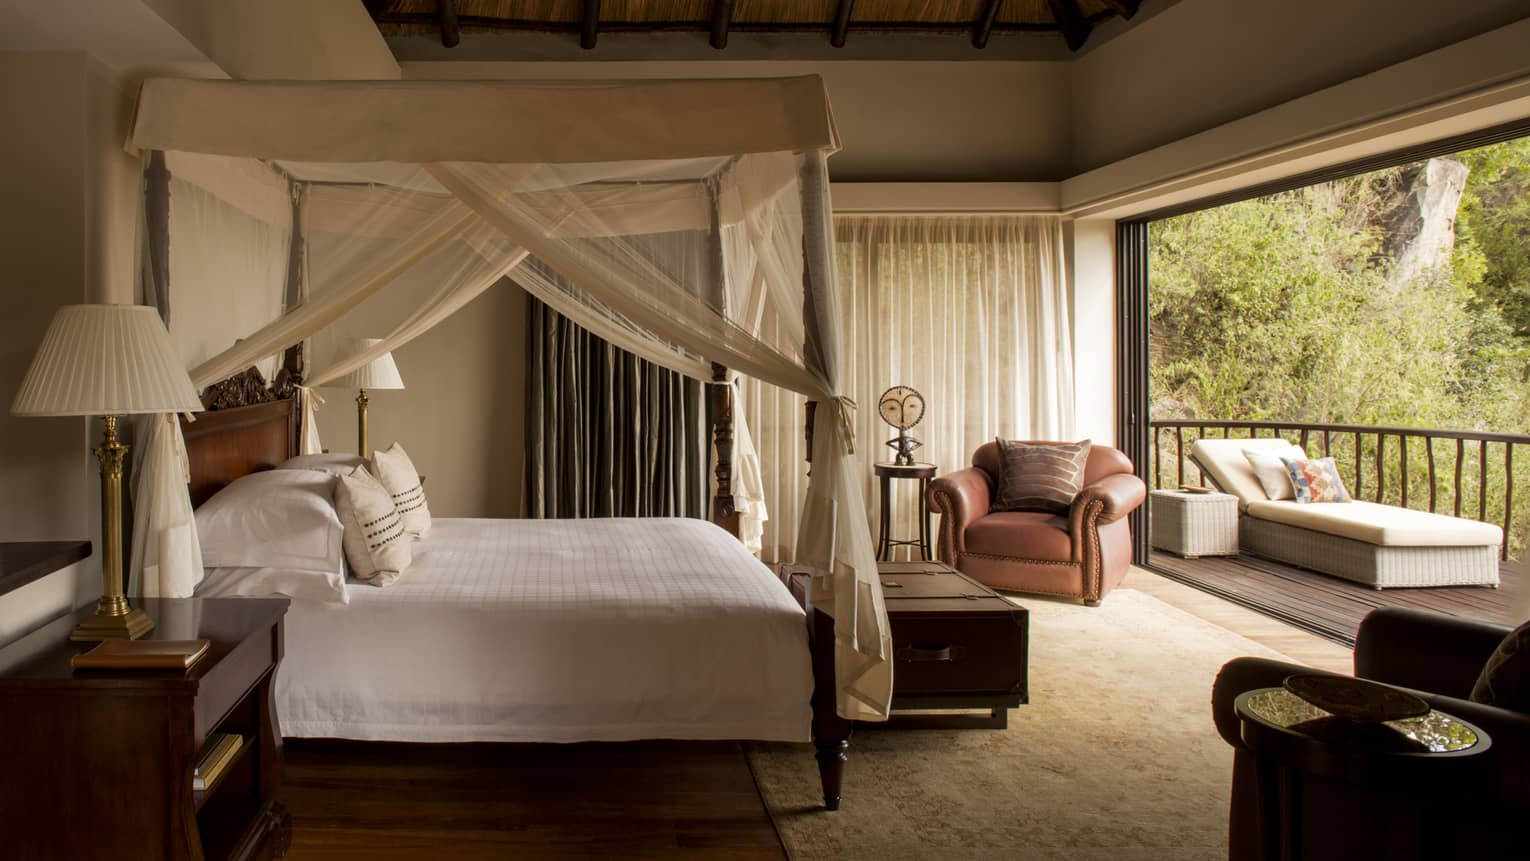 Two-bedroom villa side of poster bed with white canopy, open patio wall